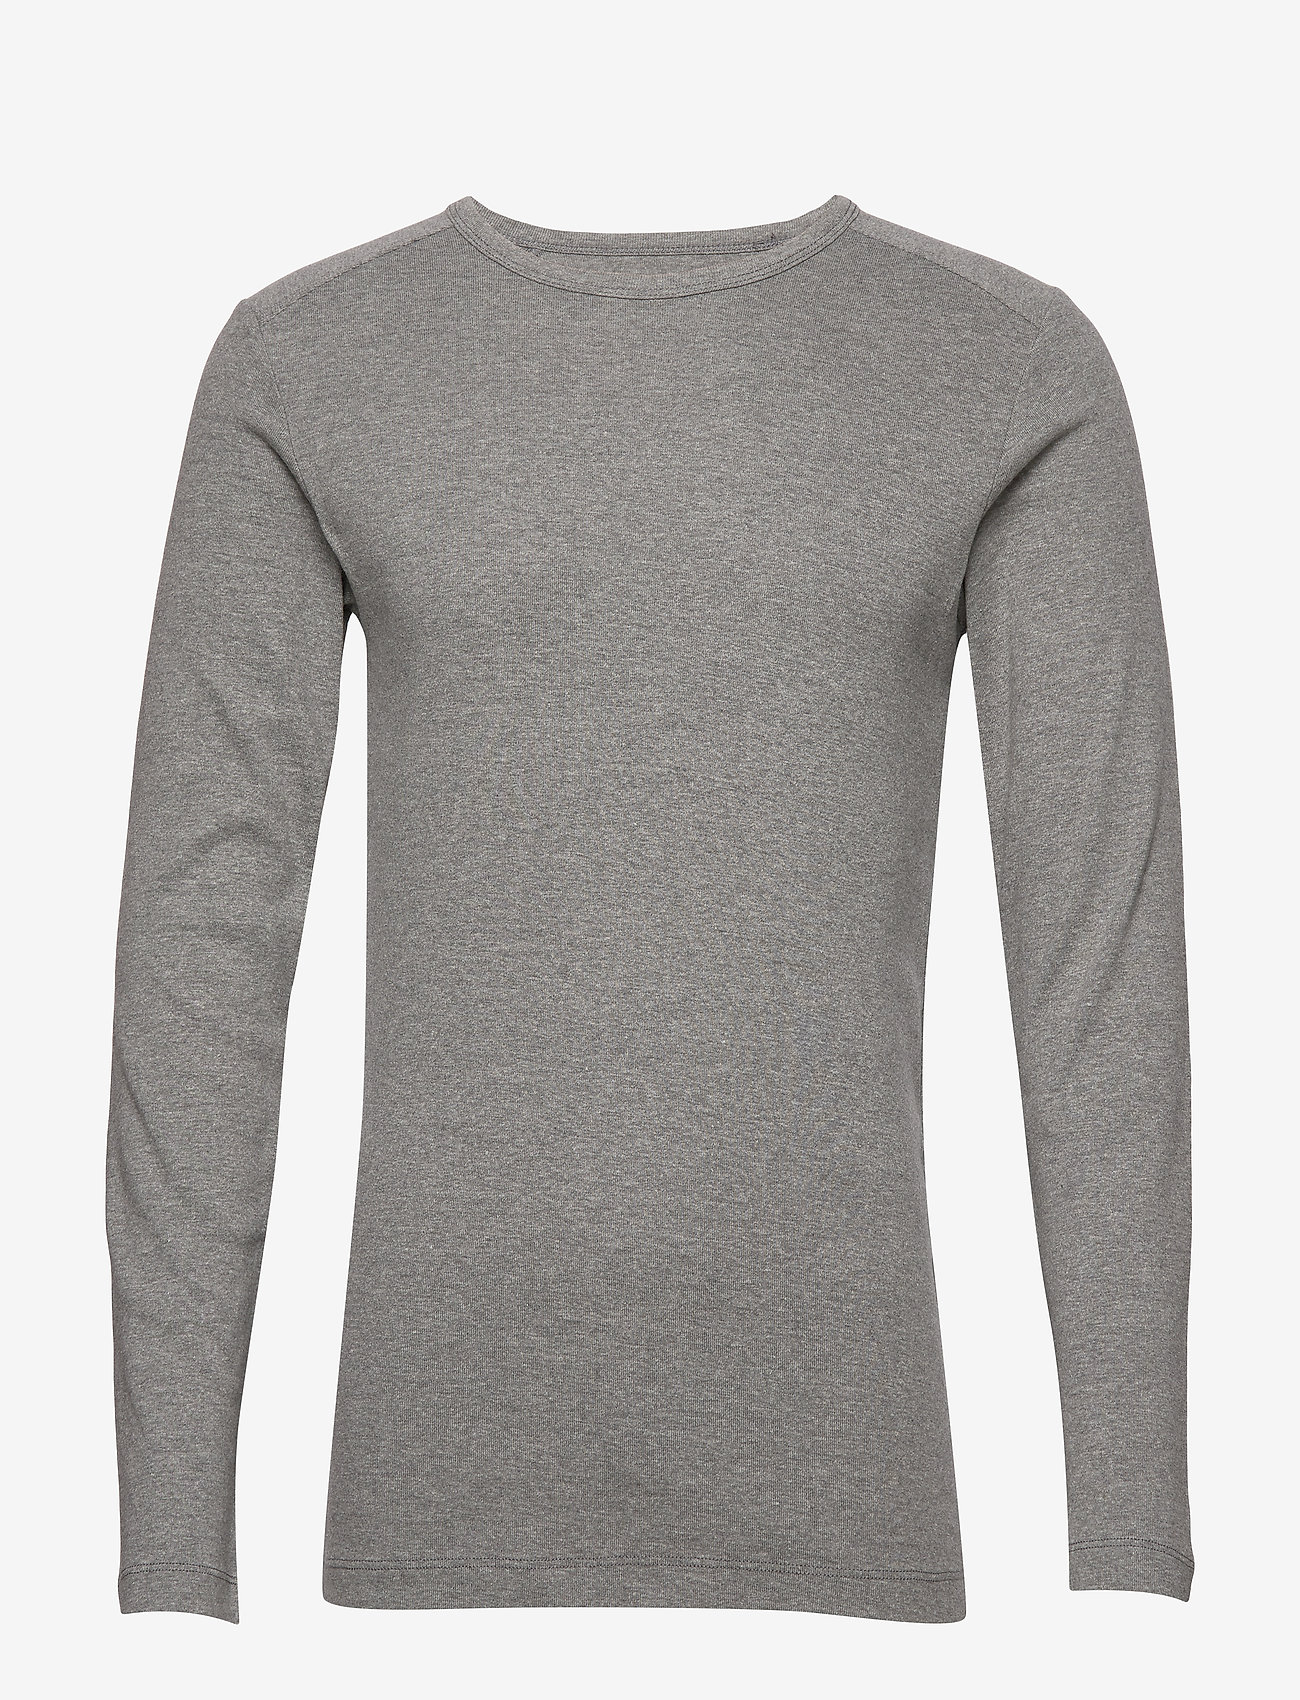 Esprit Casual - T-Shirts - basic t-shirts - medium grey - 0